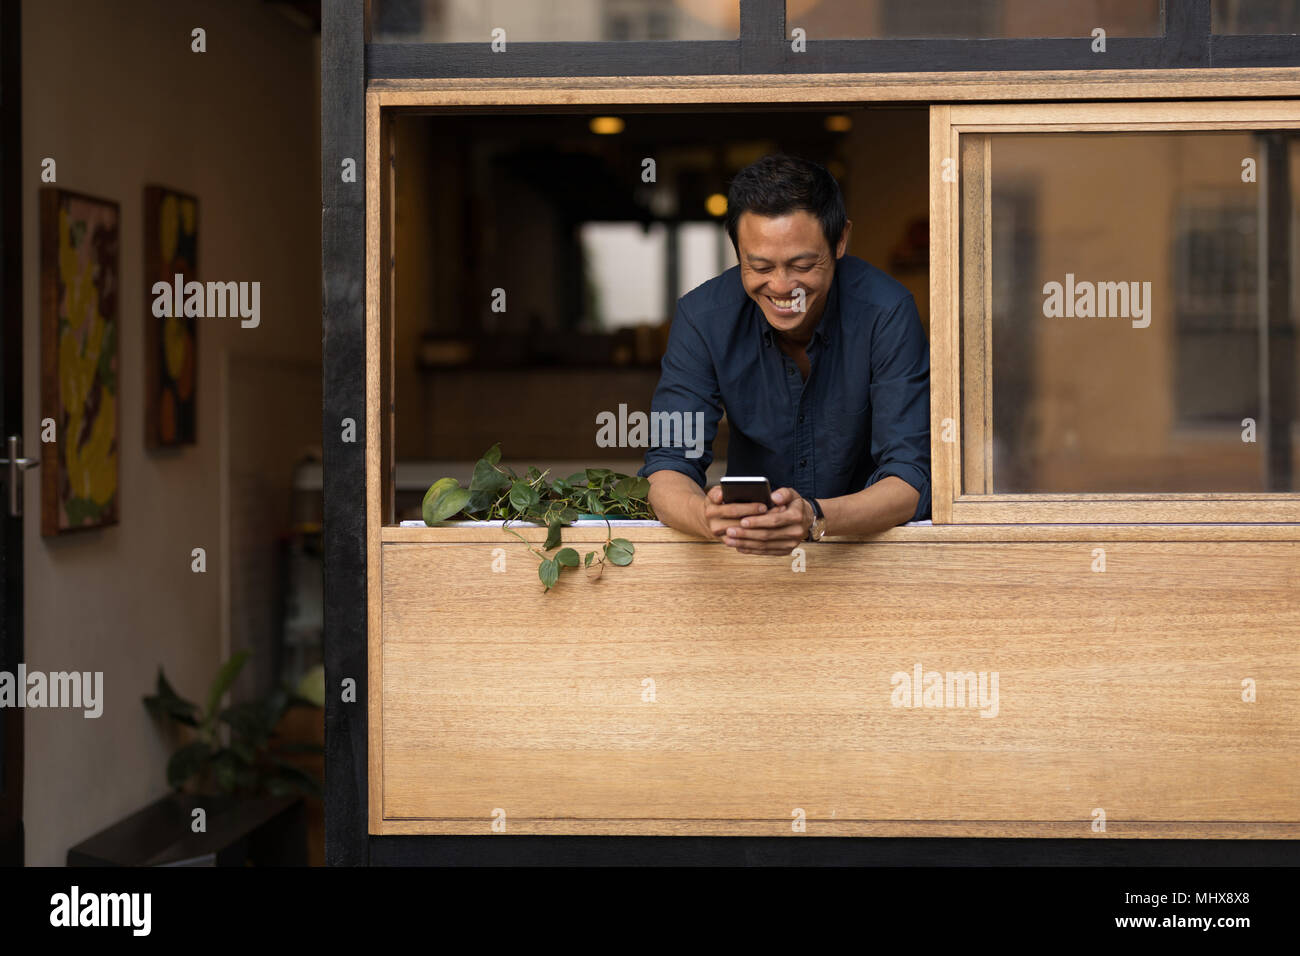 Businessman using mobile phone in the cafe Photo Stock